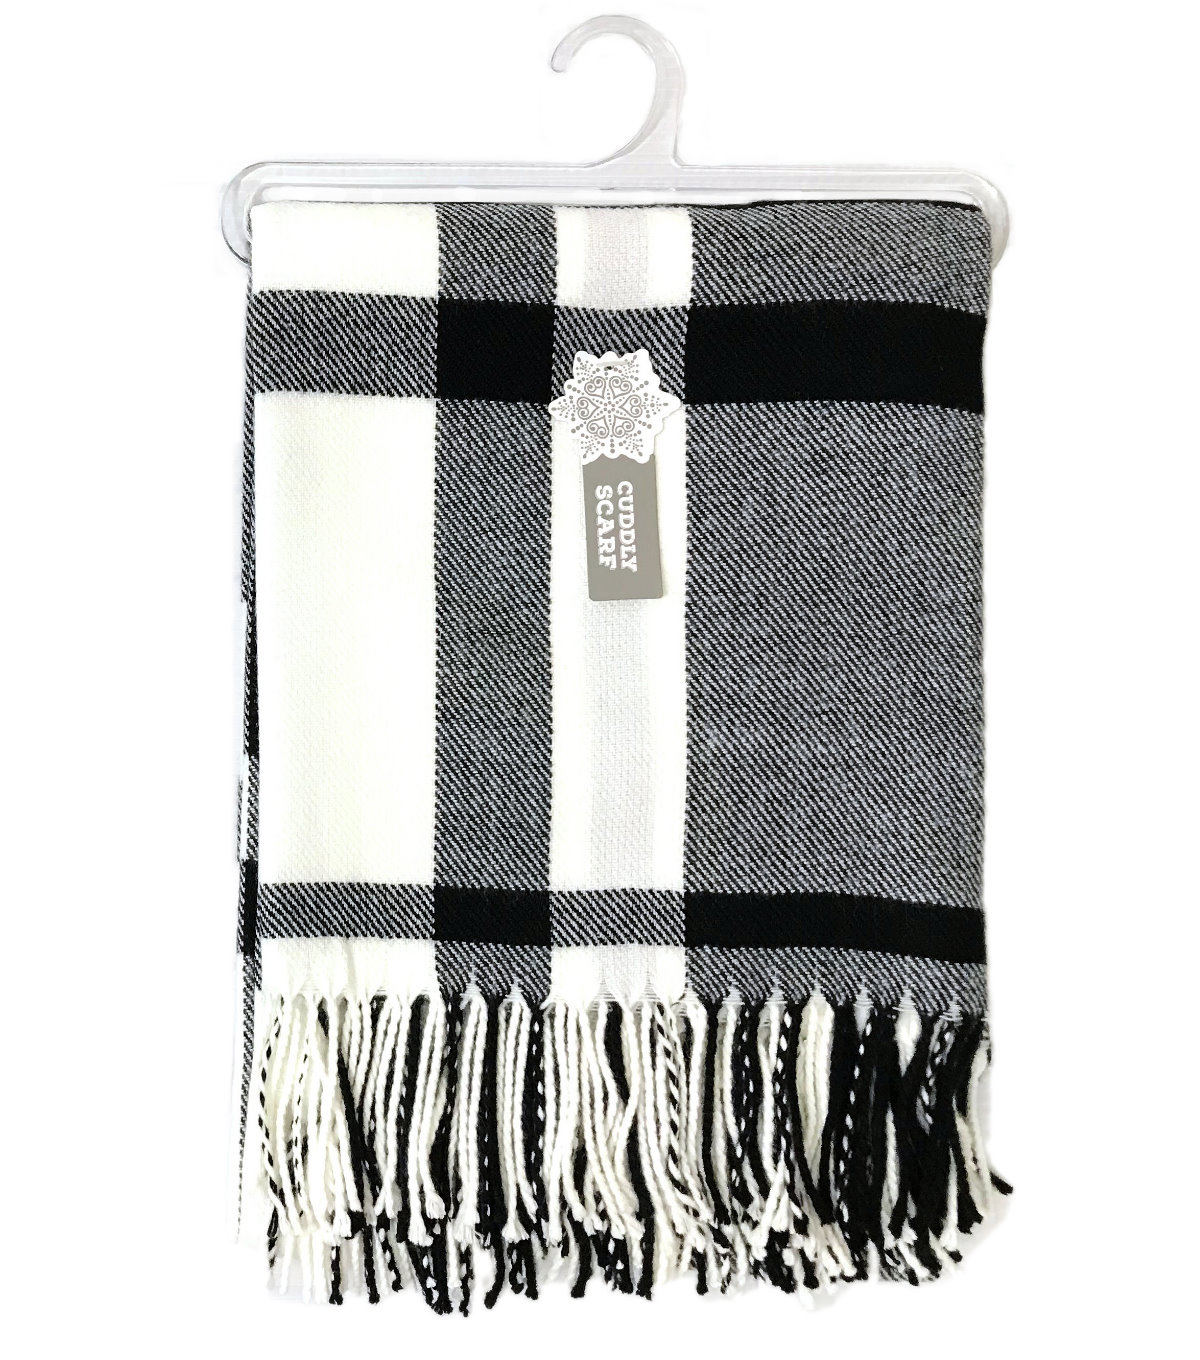 a402cc3f25b8b Christmas Cuddly Blanket Scarf-Black & White Plaid | JOANN